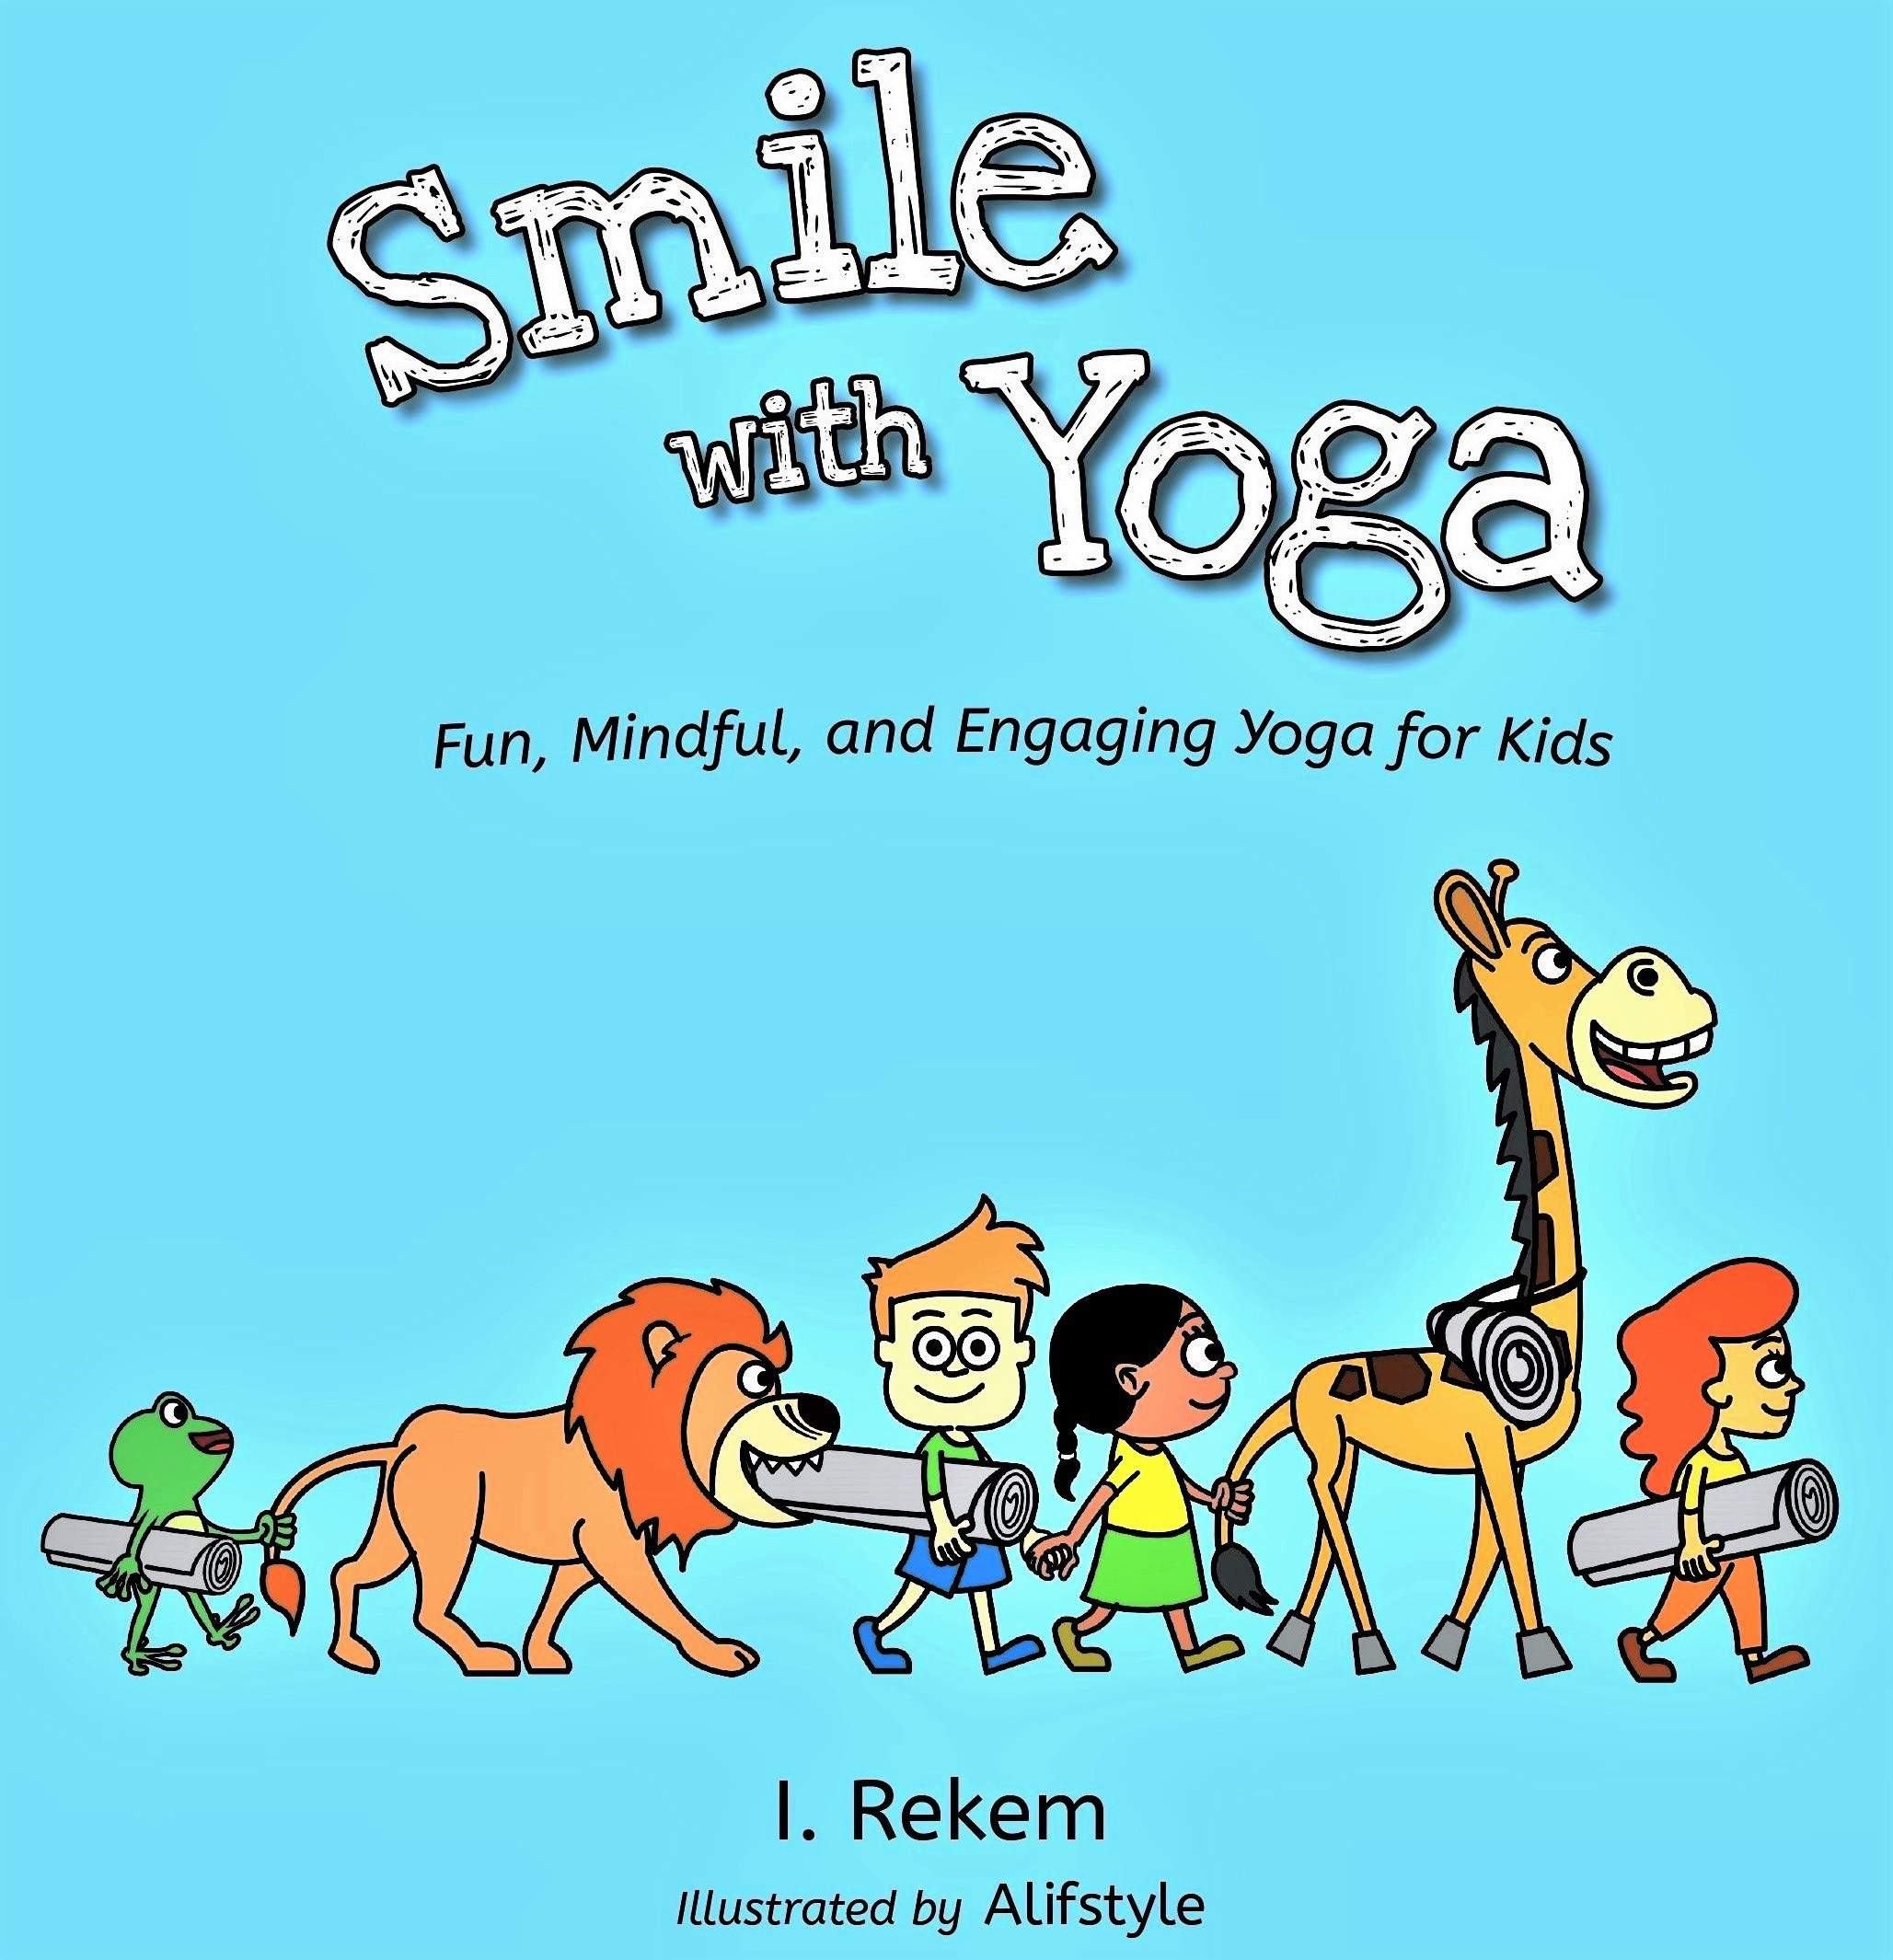 Amazon.com: Smile with Yoga: Fun, Mindful, and Engaging Yoga ...